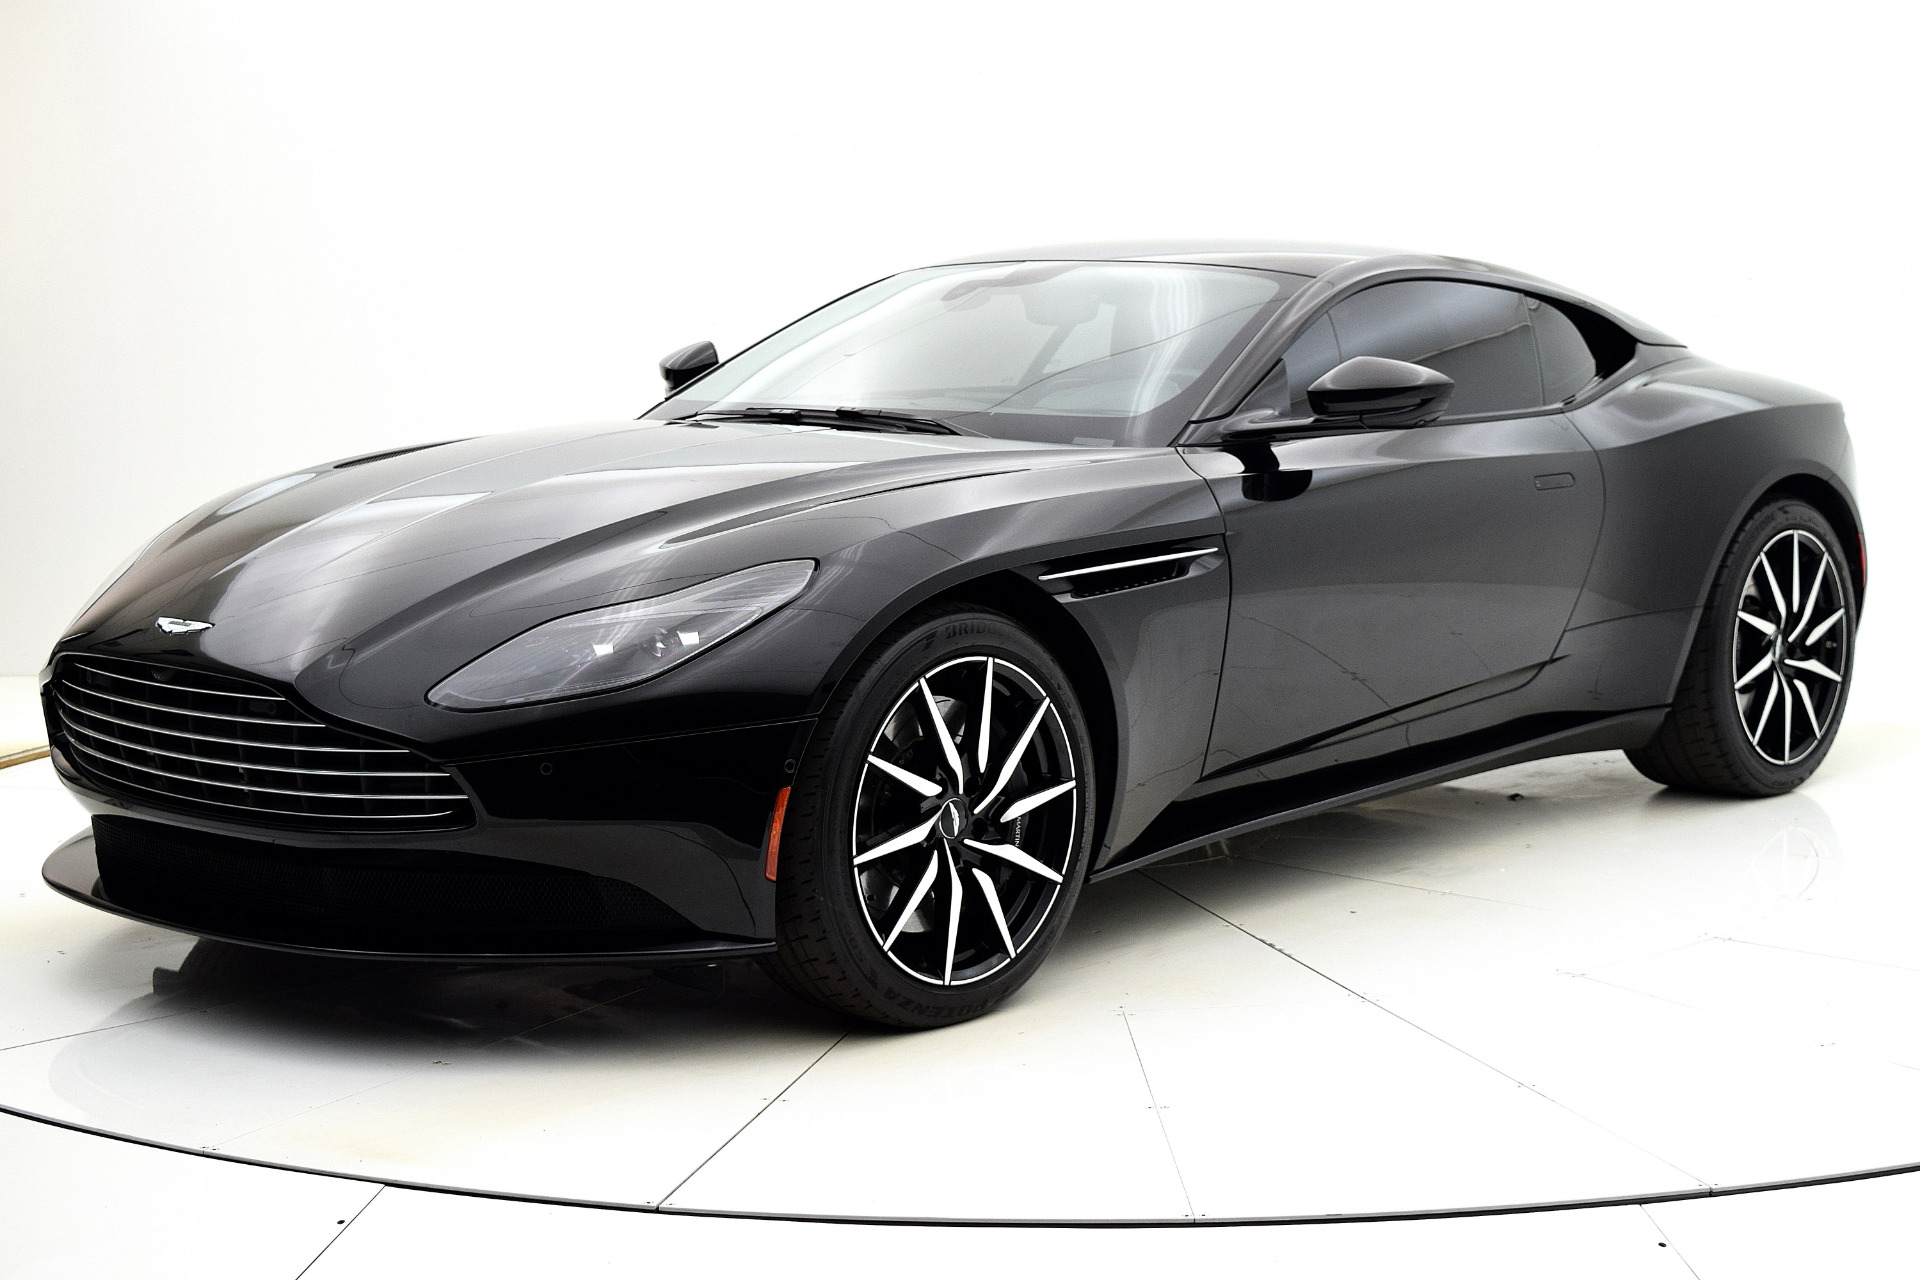 Used 2018 Aston Martin DB11 V8 Coupe for sale Sold at Bentley Palmyra N.J. in Palmyra NJ 08065 2